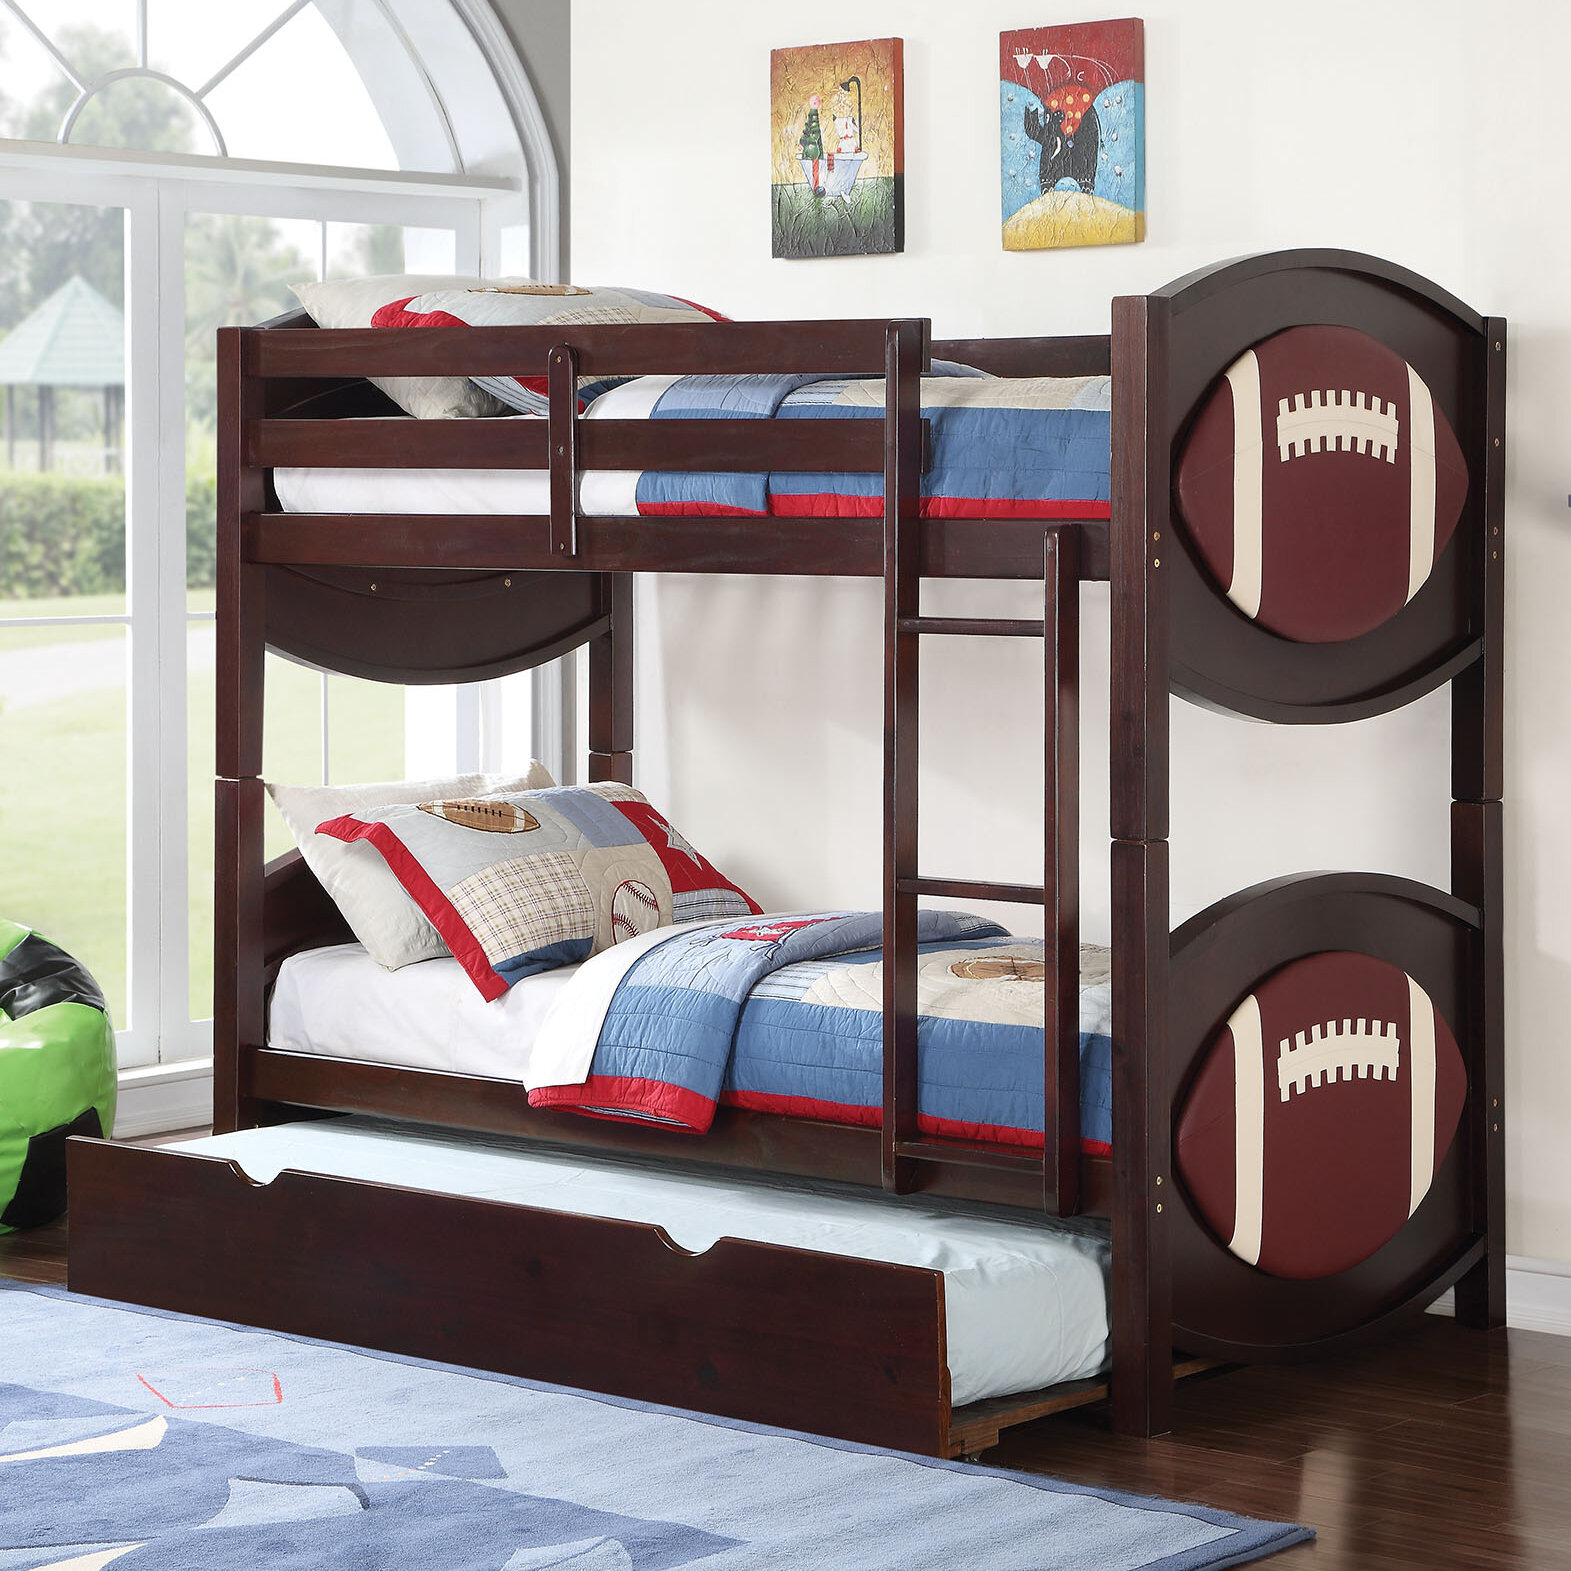 Harriet Bee Askov Football Twin Over Twin Bunk Bed With Trundle